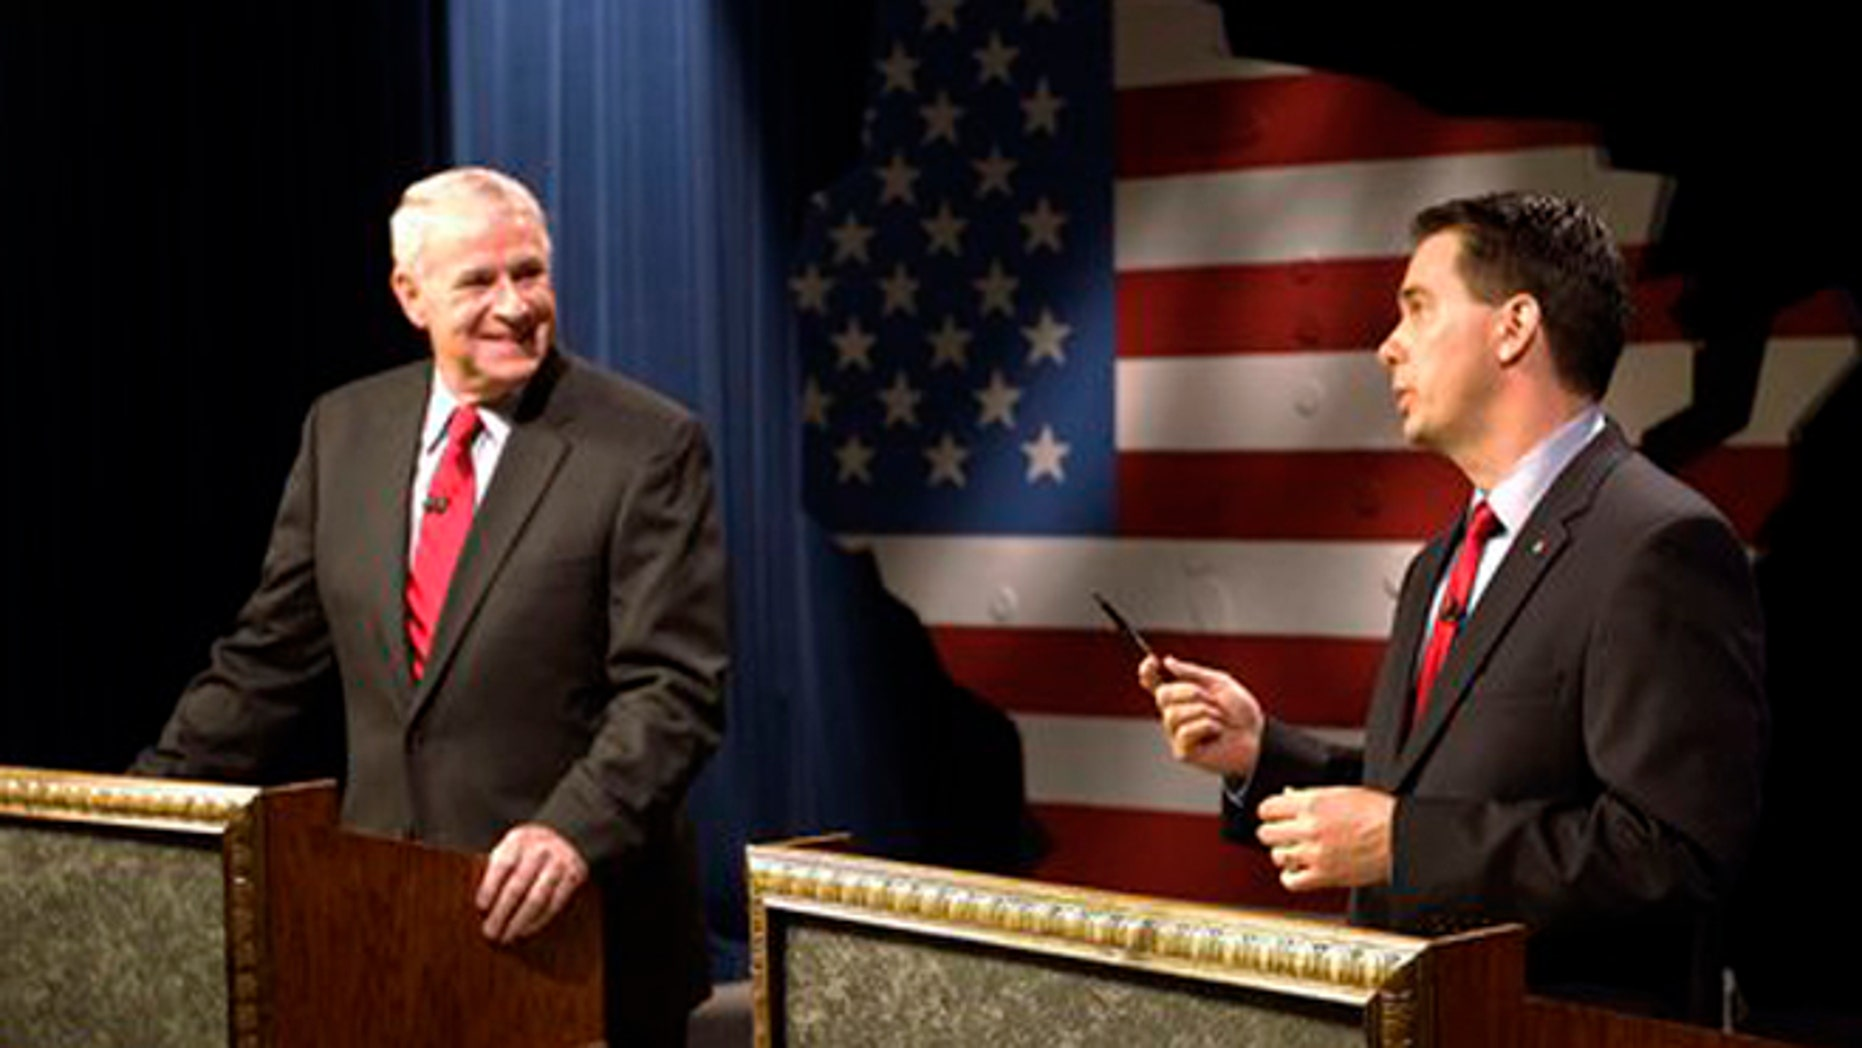 May 25, 2012: Wisconsin GOP Gov. Scott Walker, right, and Democratic challenger Tom Barrett get ready to participate in a televised debate.